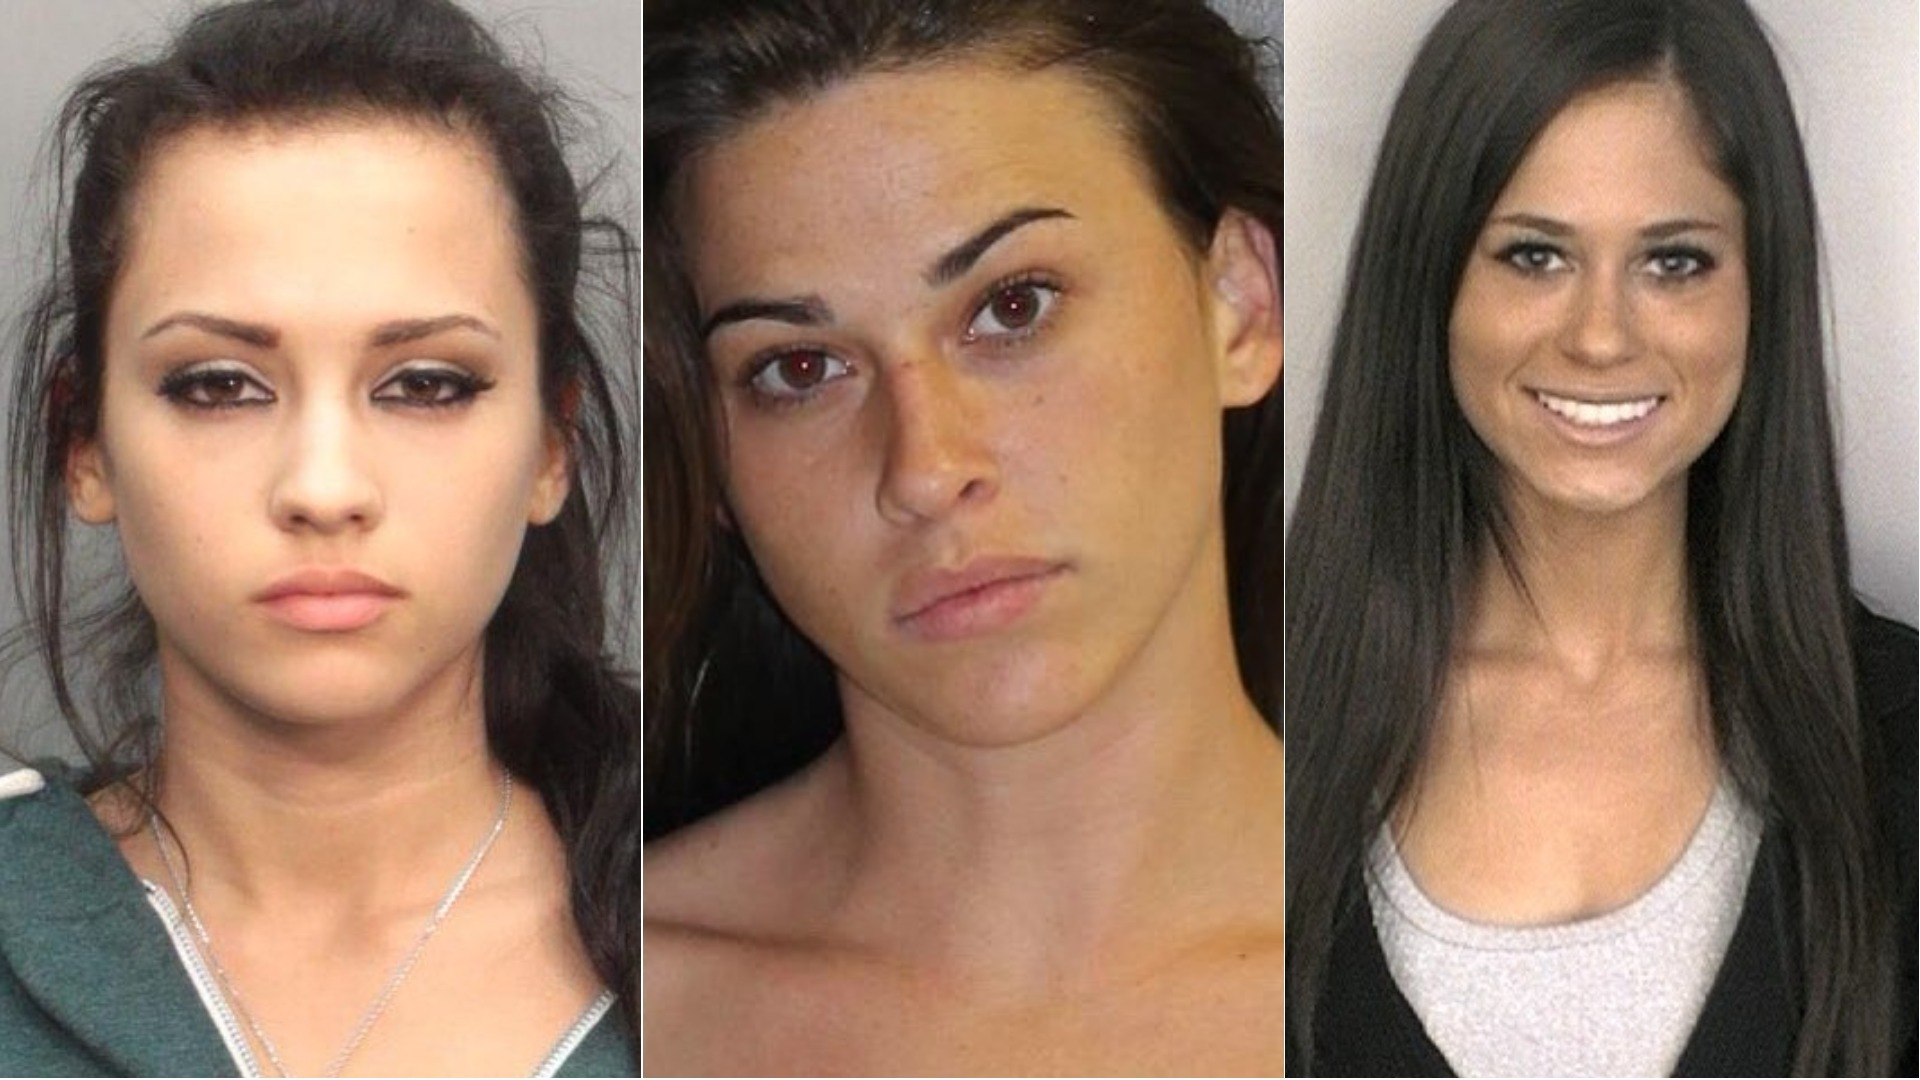 Mug shots from the Mugshawty website.